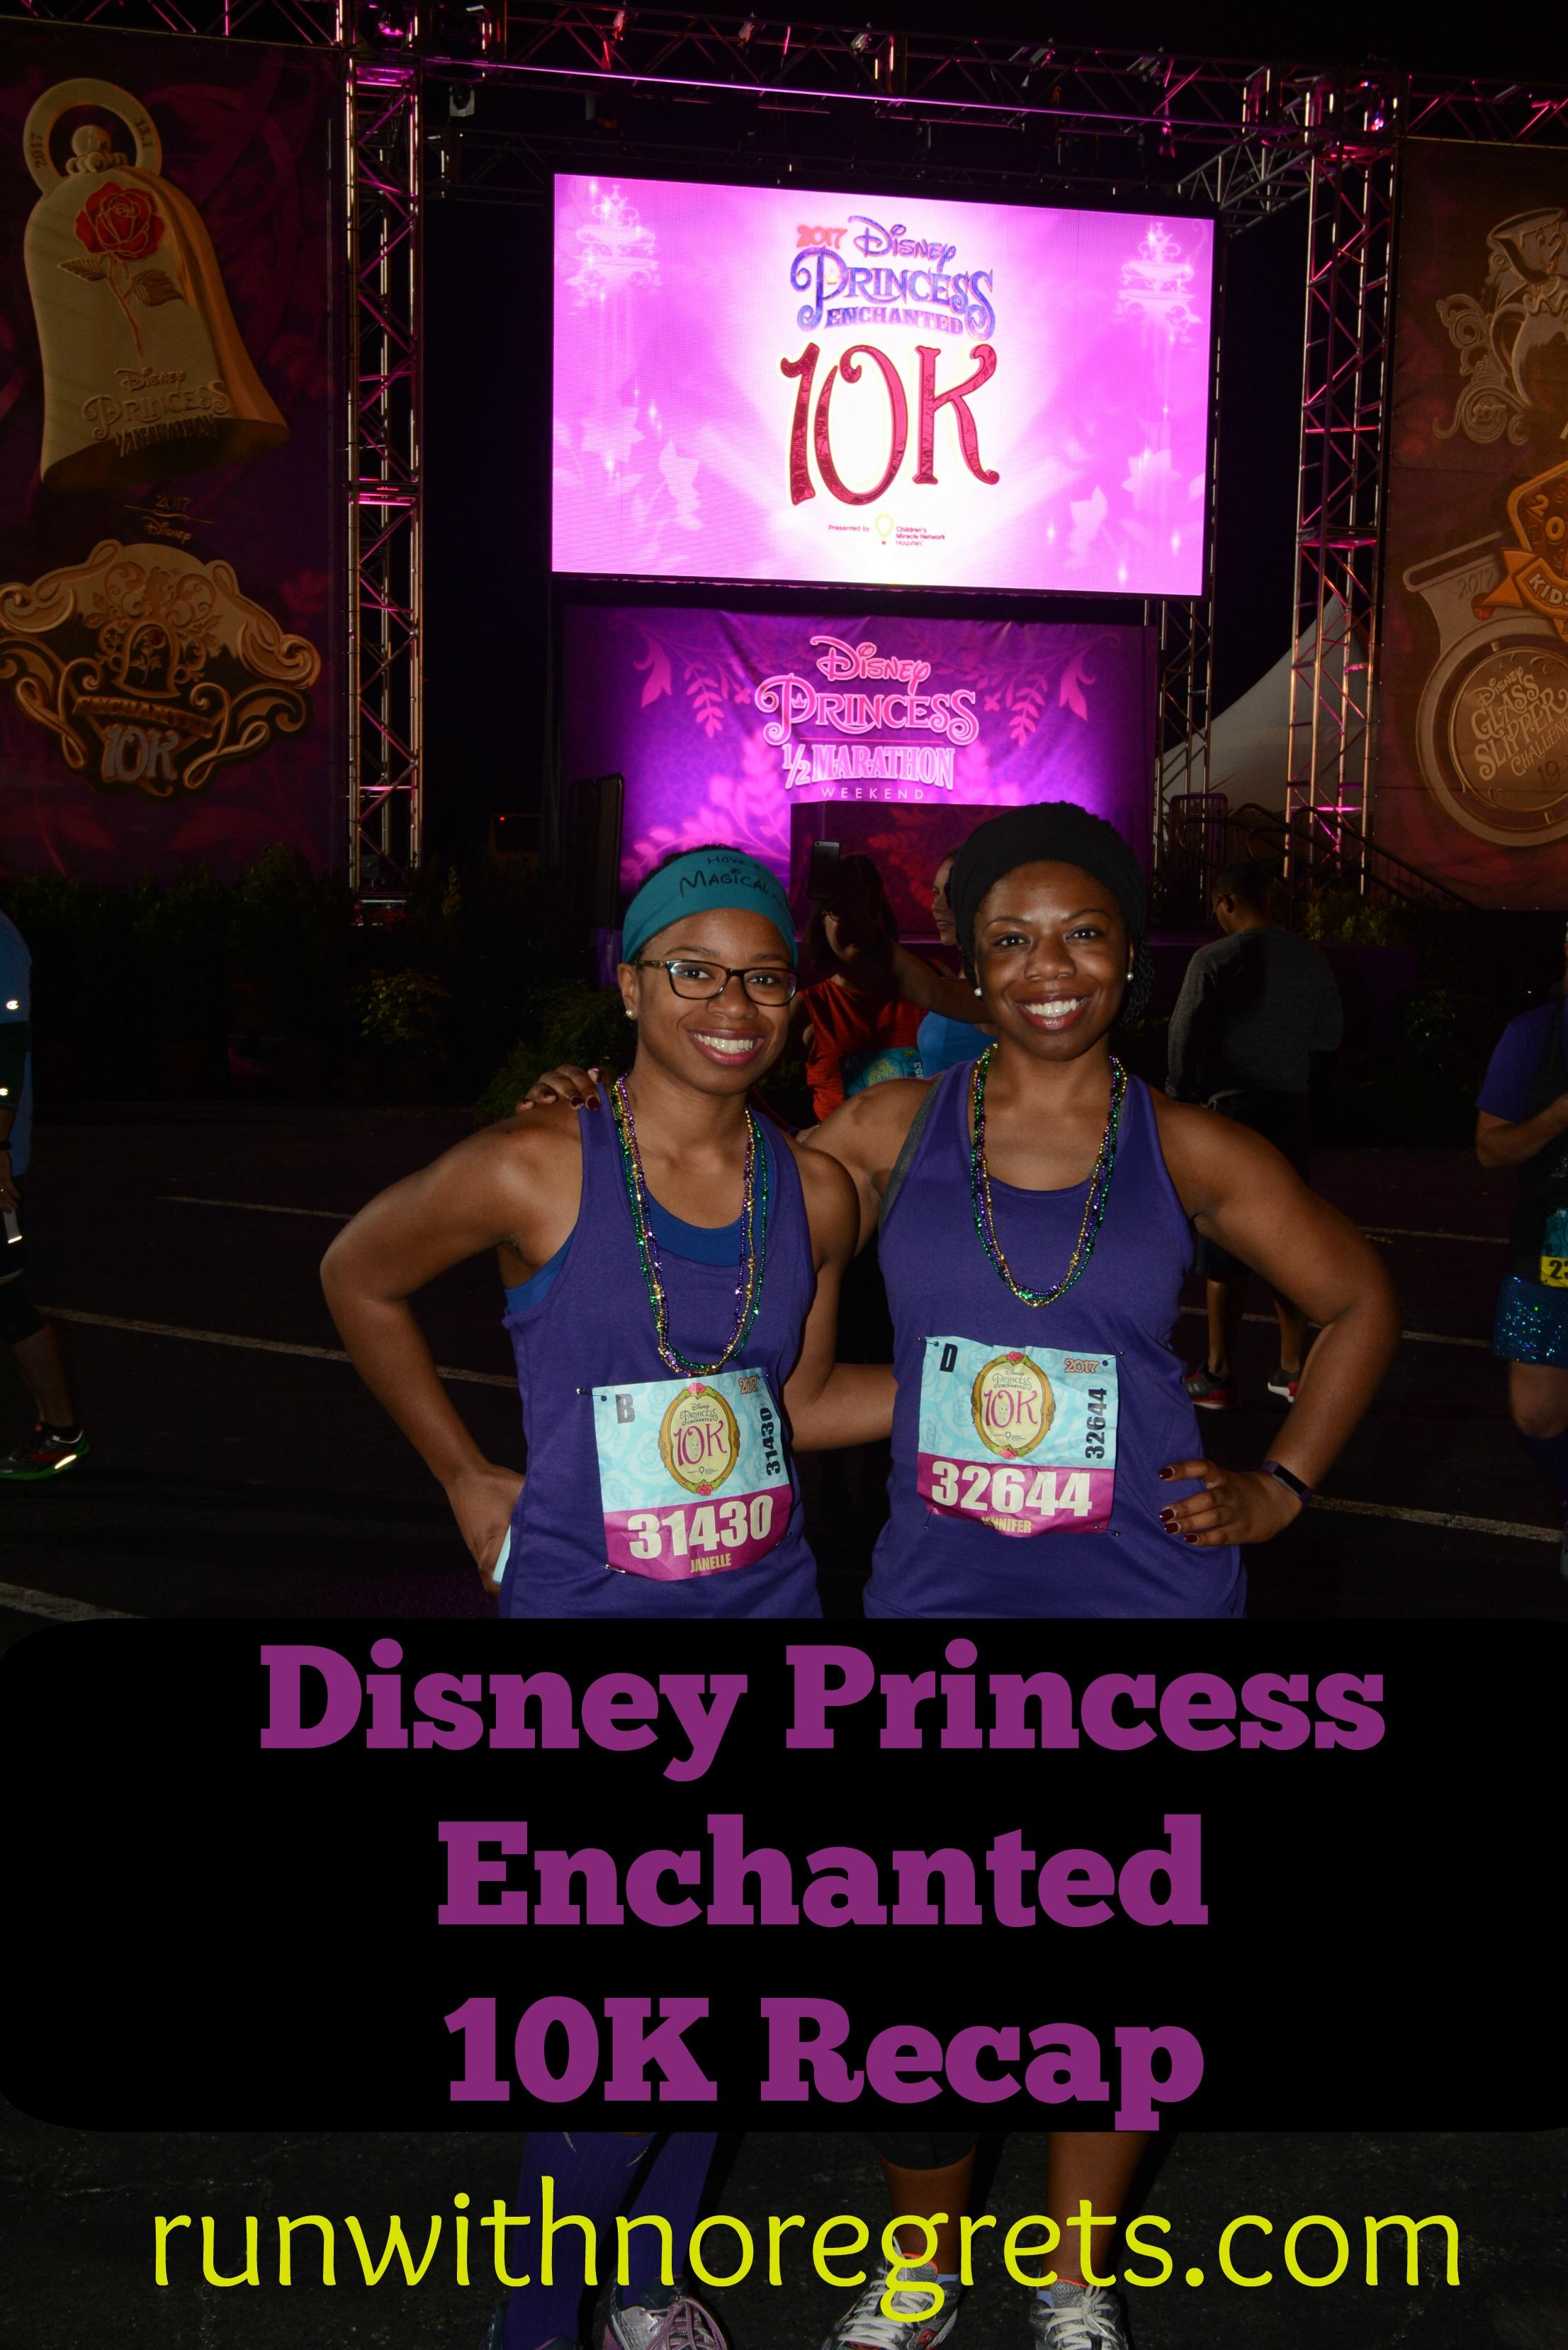 Have you ever run a race in Disney World? I'm so excited to share my experience running the Disney Enchanted 10K in 2017! Disney Princess Weekend was wonderful and we had a great time. Check out more race recaps at runwithnoregrets.com!